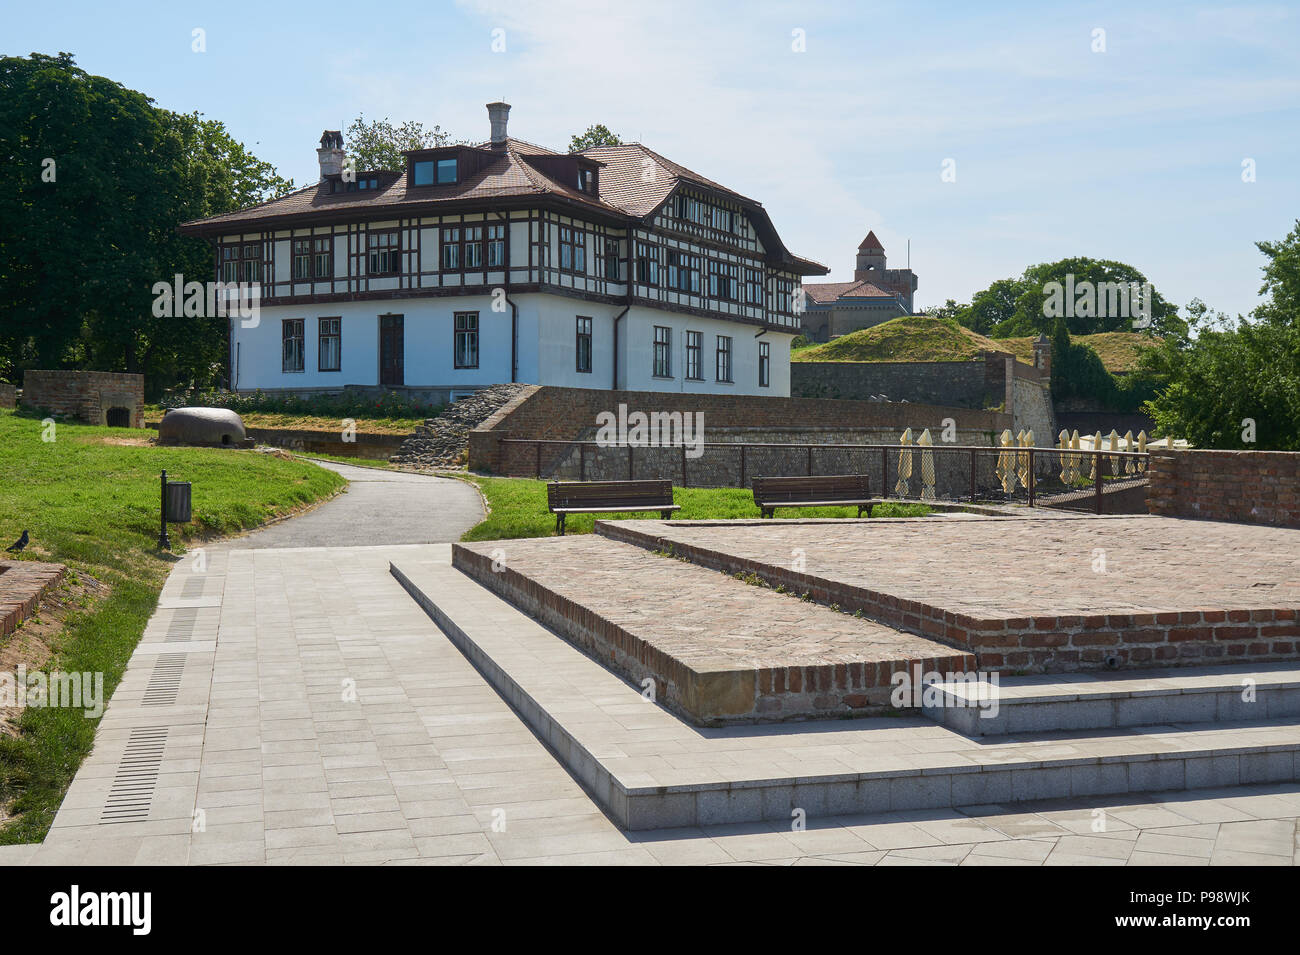 Belgrade, Serbia - May 03, 2018: Institute for Protection of Cultural Monuments of Belgrade Stock Photo